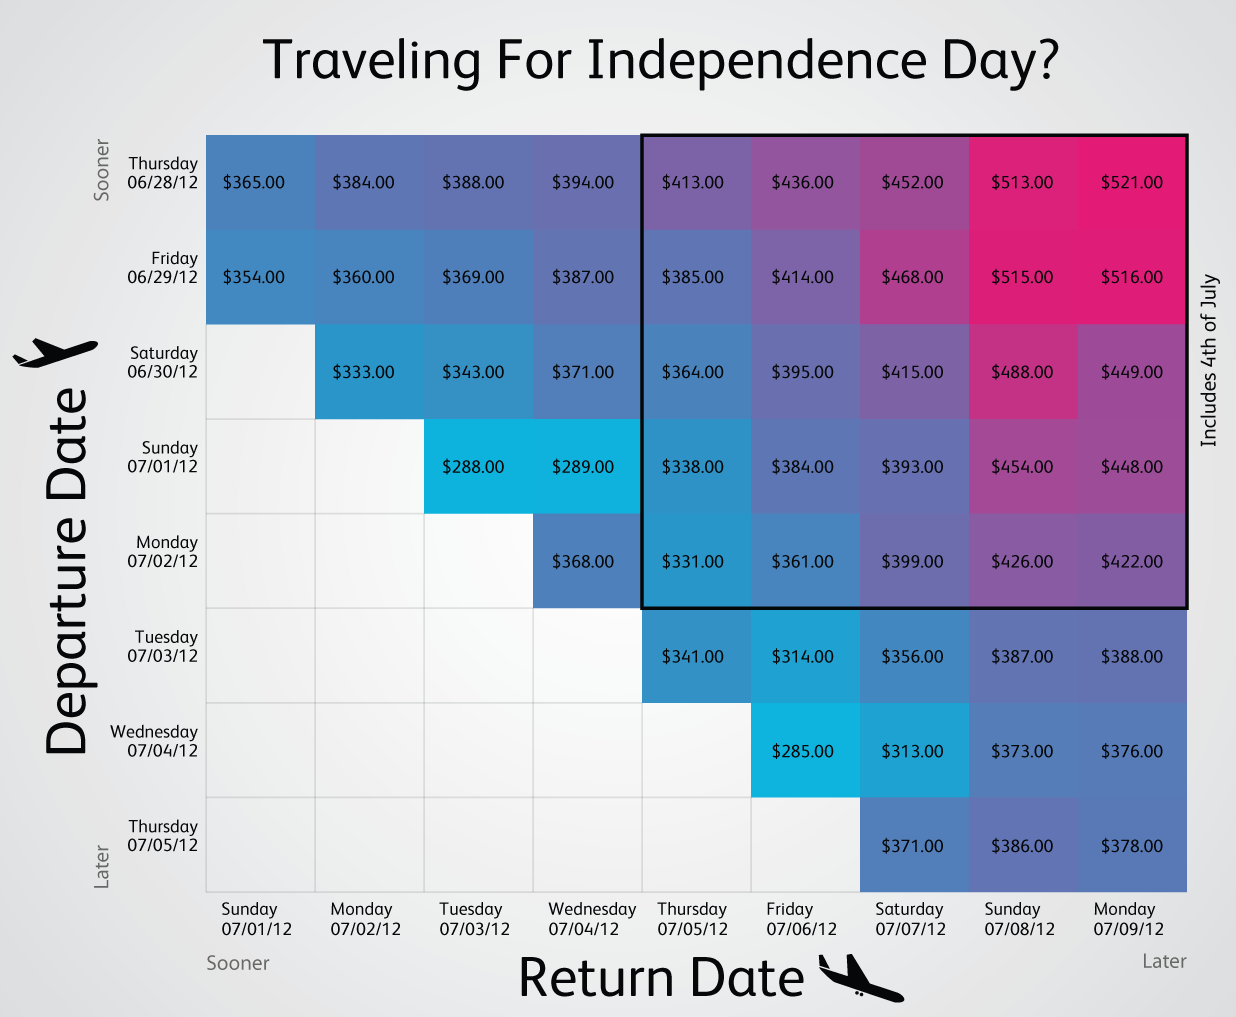 Independence Day Travel Heat Map   Charts and Graphs   Data